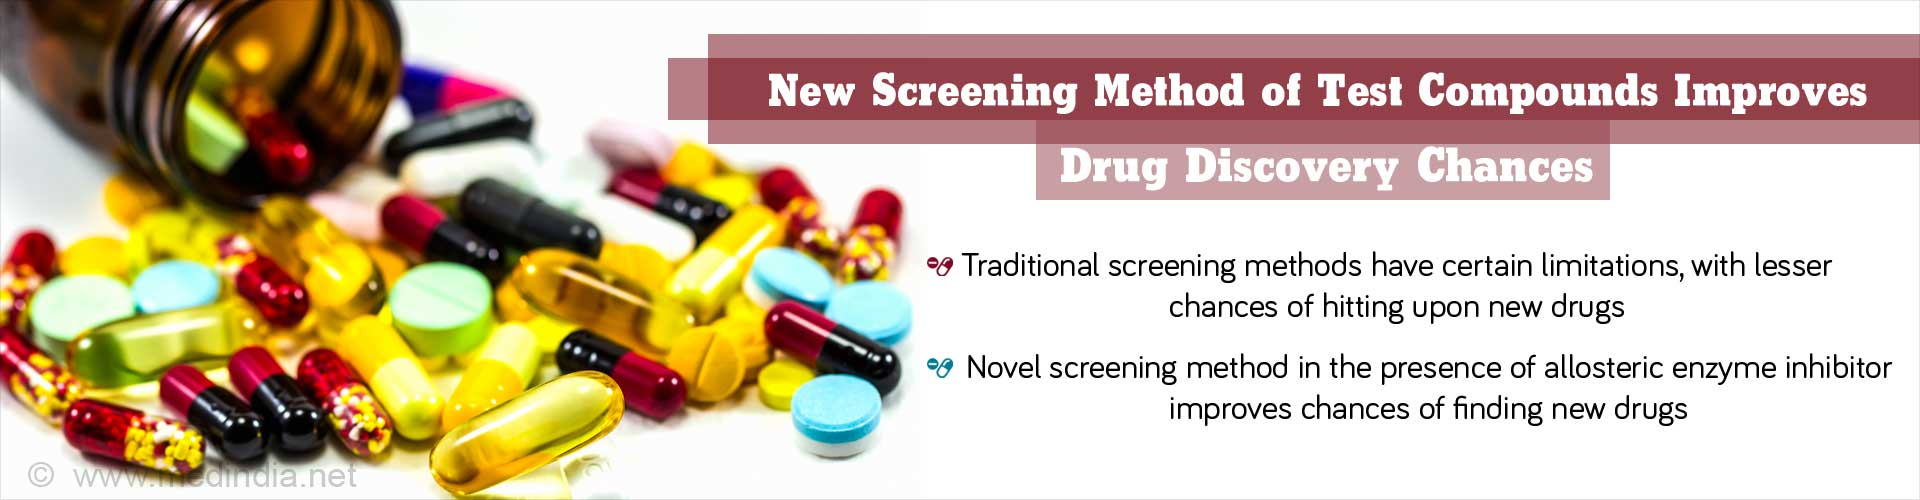 new screening method of test compounds improves drug discovery chances - traditional screening methods have certain limitation, with lesser chances of hitting upon new drugs - novel screening method in the presence of allosteric enzyme inhibitor improves chances of finding new drugs